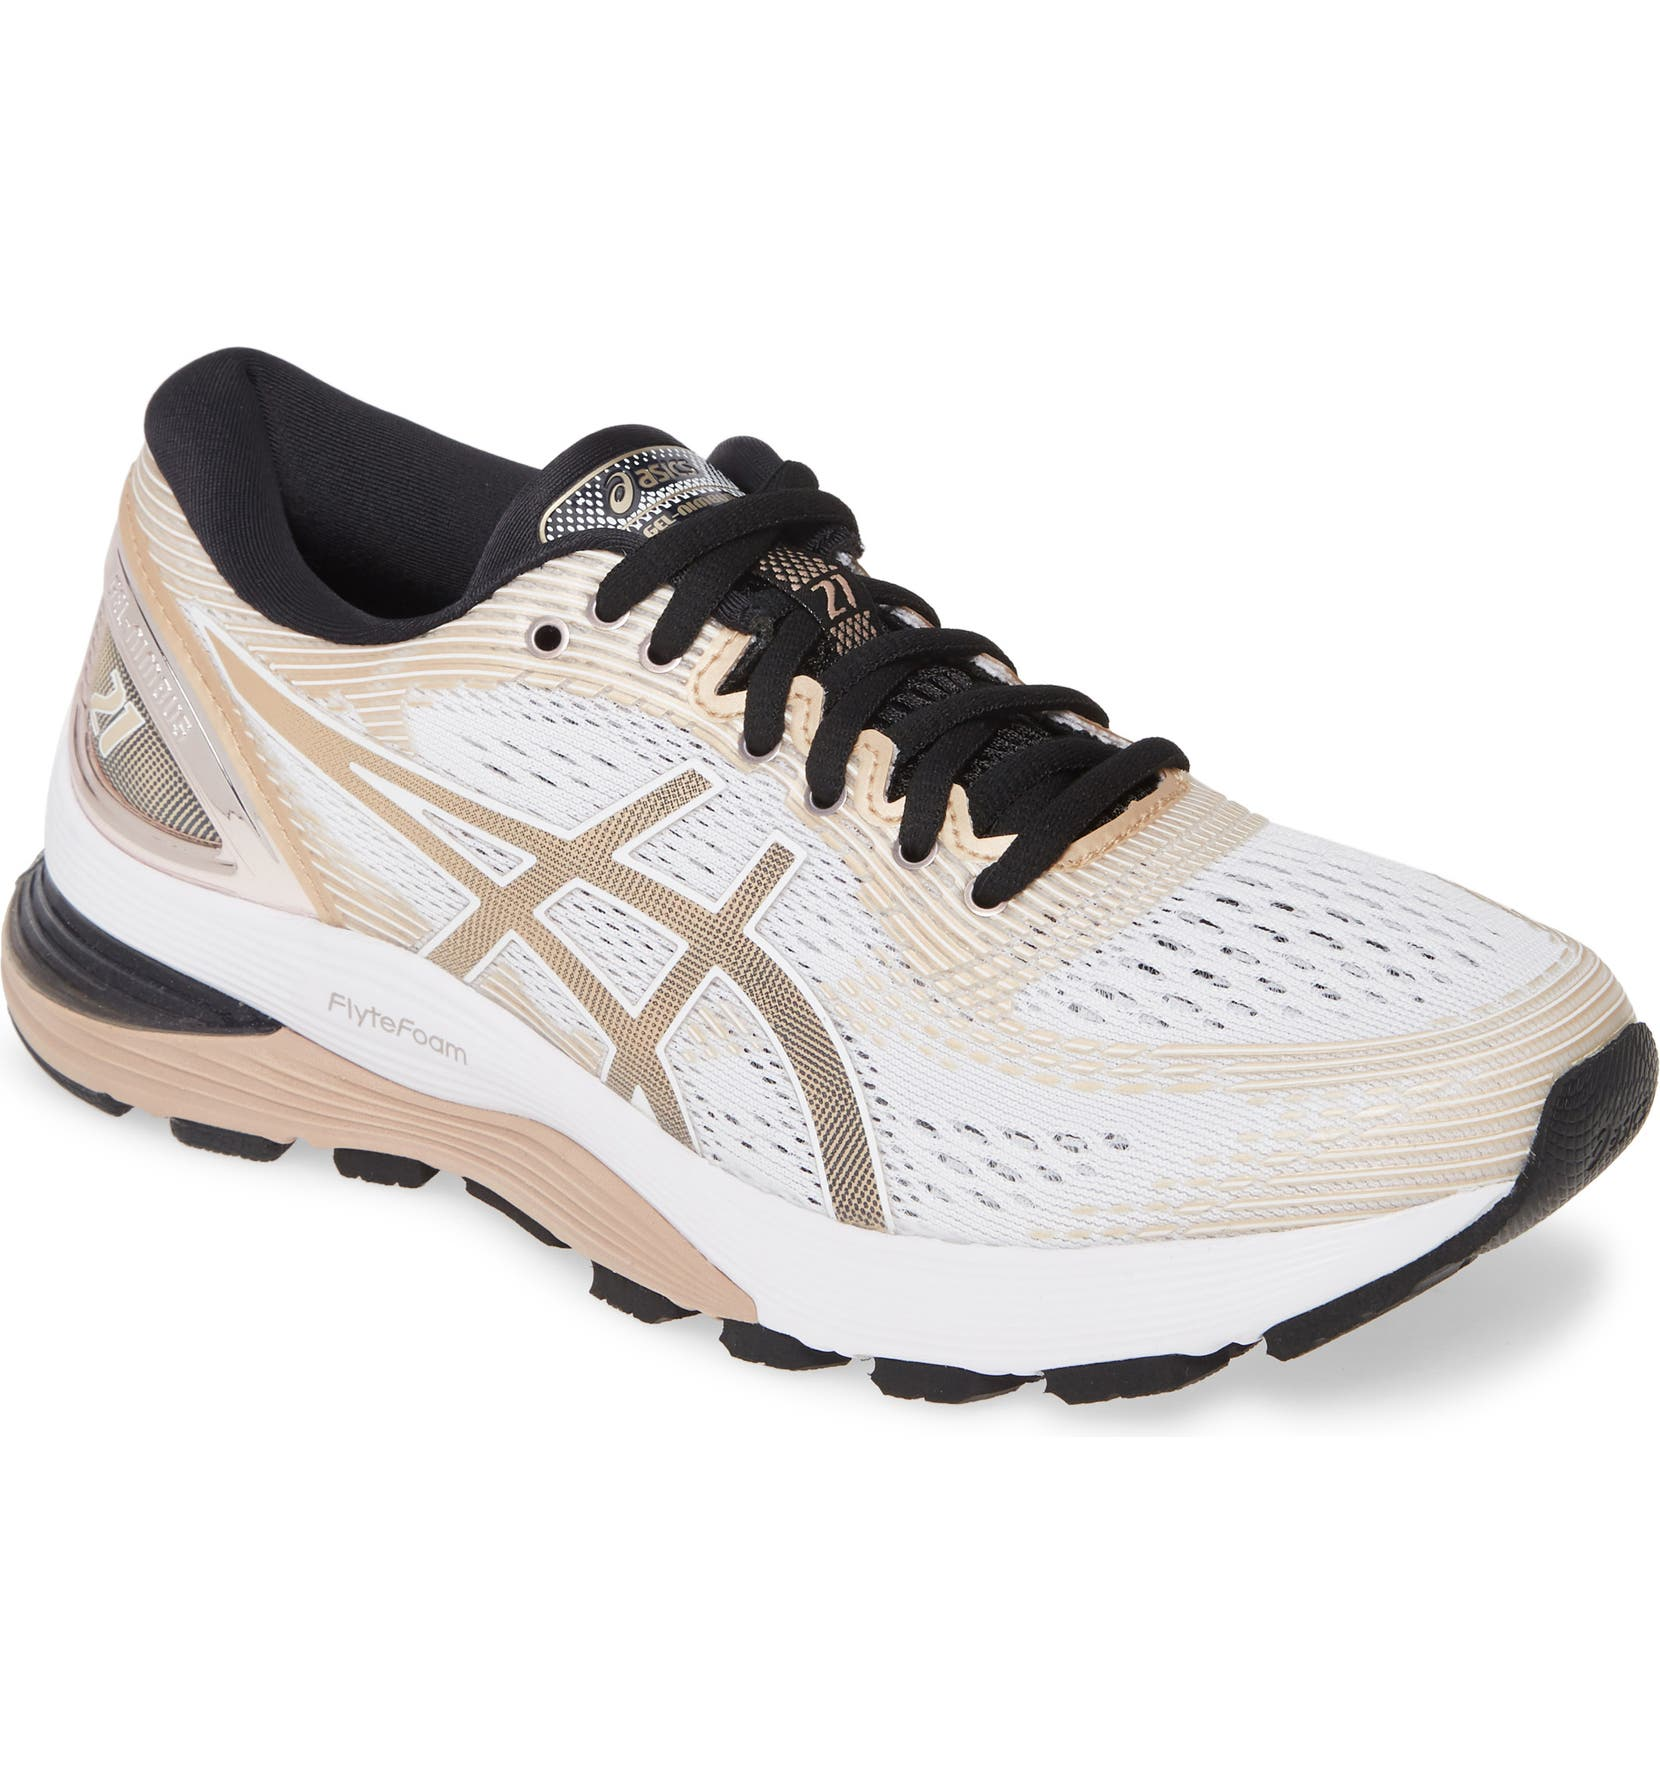 sale retailer 84b23 1251e GEL-Nimbus 21 Platinum Running Shoe